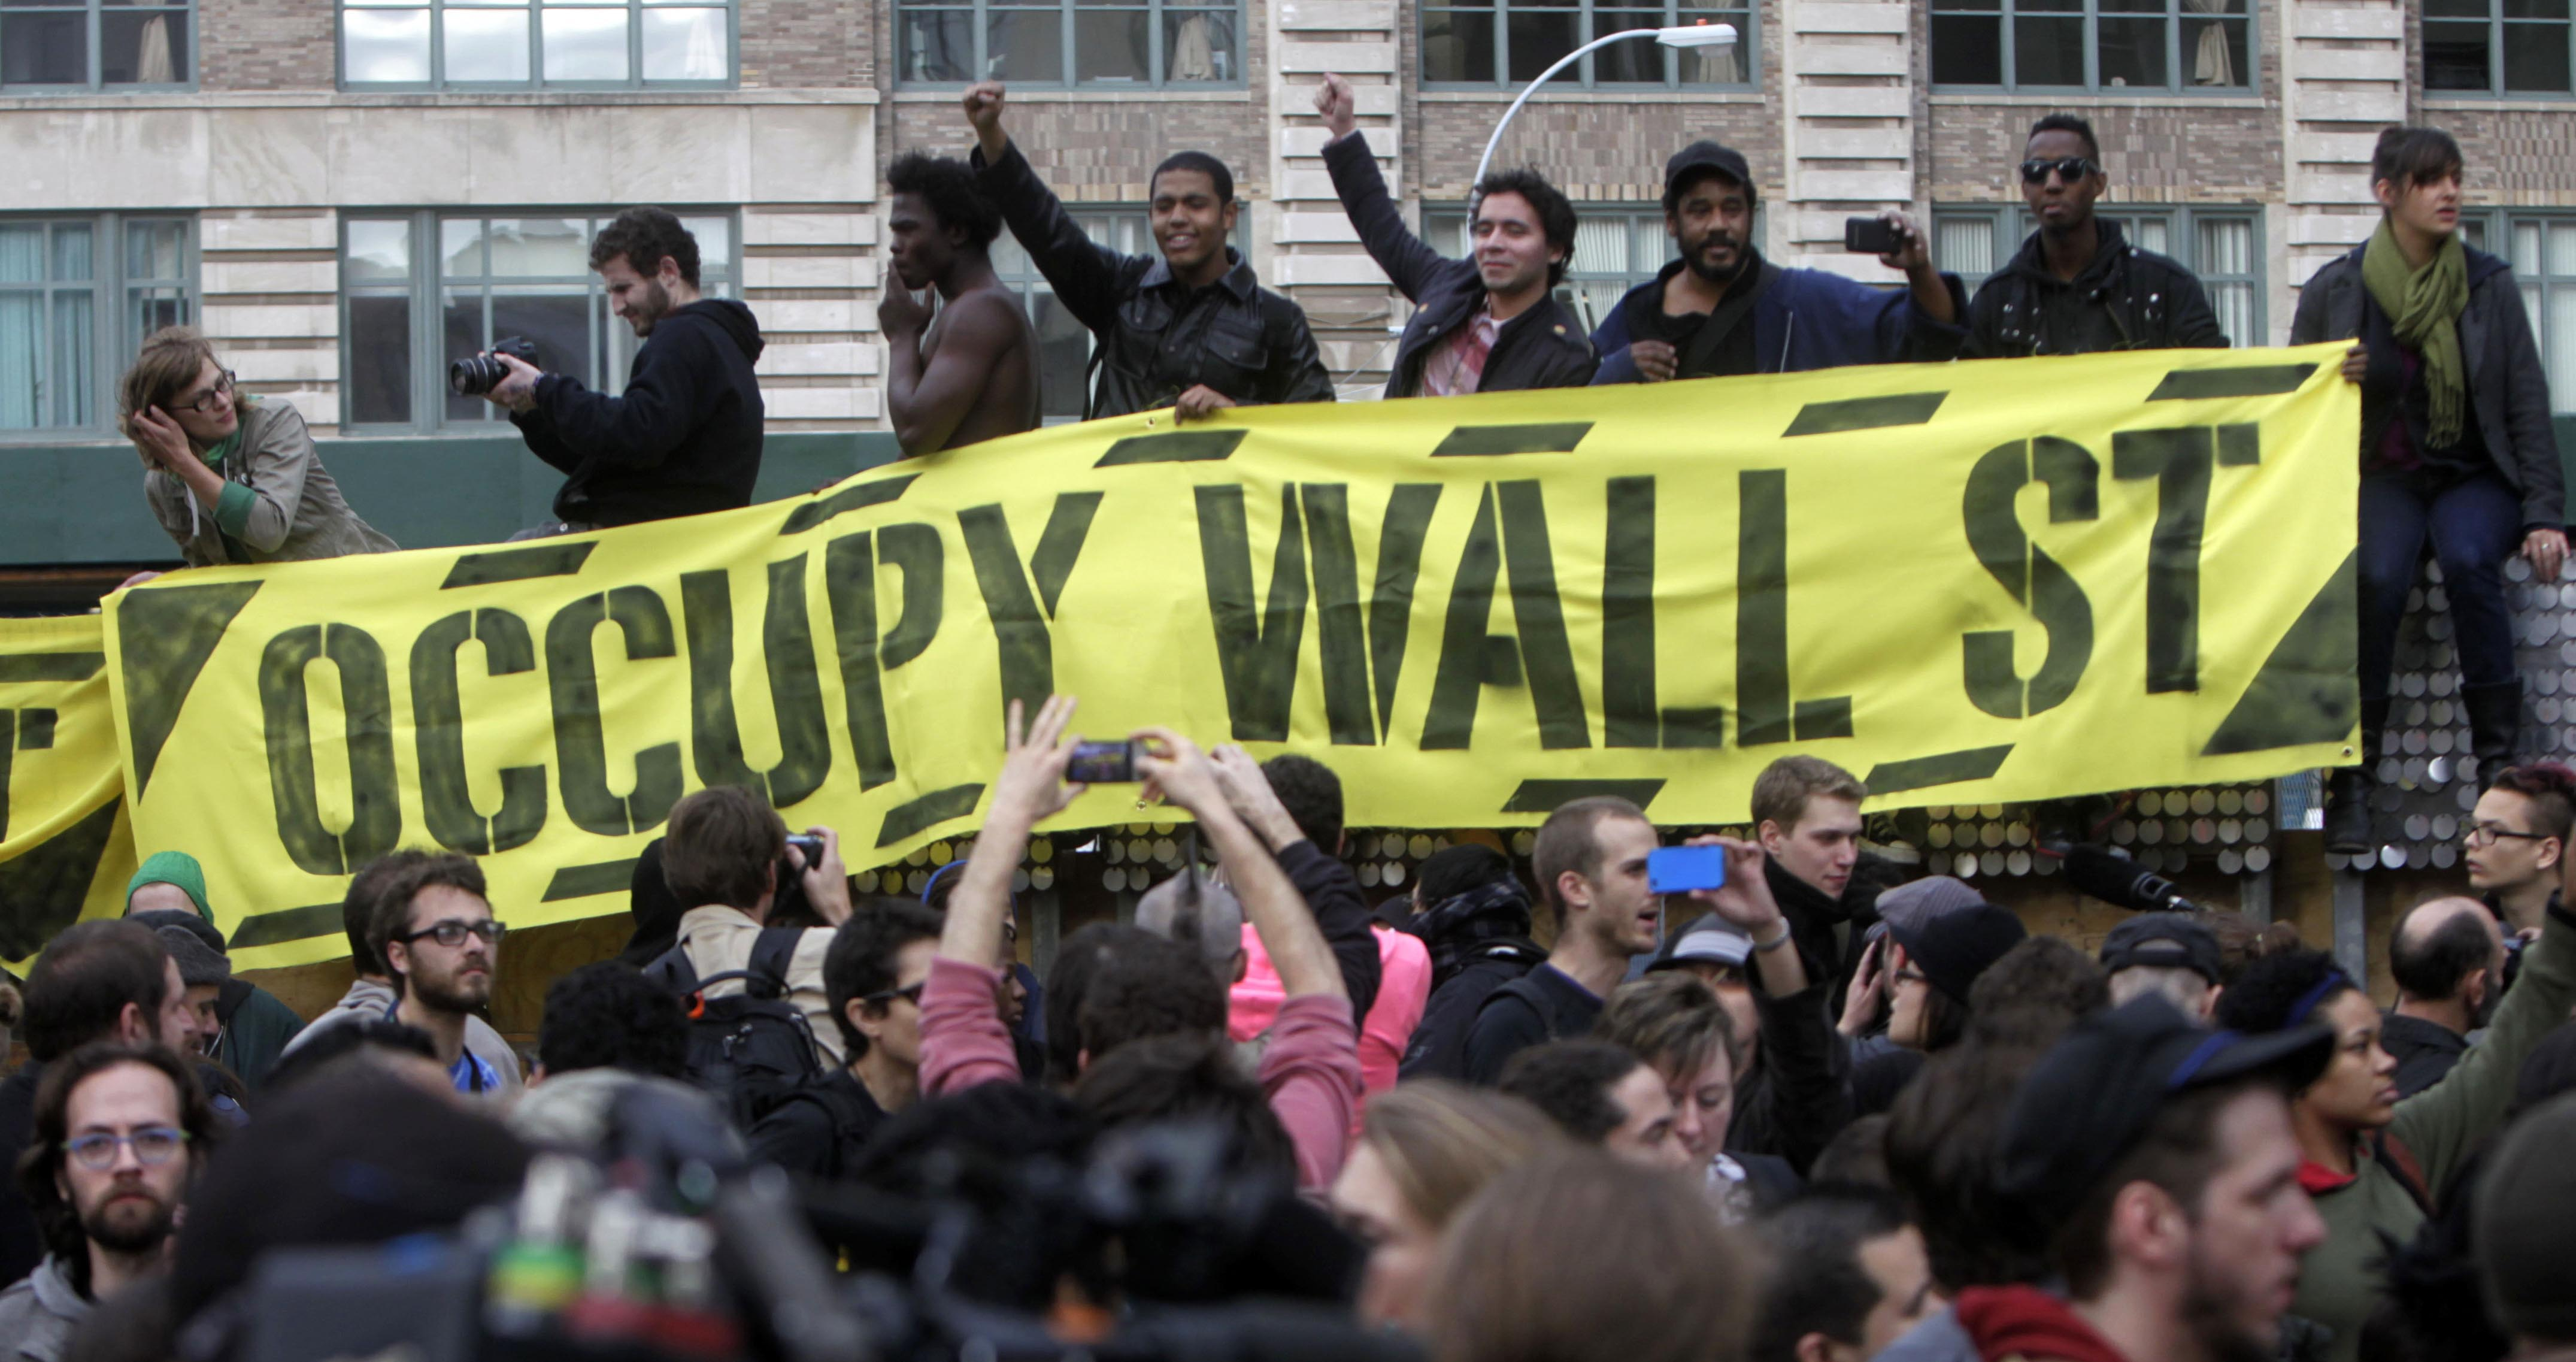 Occupy Wall Street protesters rally in a small park on Canal Street in New York, Tuesday, Nov. 15, 2011. Police officers evicted the protesters from their base in Zuccotti Park overnight. The National Lawyers Guild obtained a court order allowing the protesters to return with their tents to the park, where they have camped for two months. The guild said the injunction prevents the city from enforcing park rules on the protesters. (AP Photo/Seth Wenig)